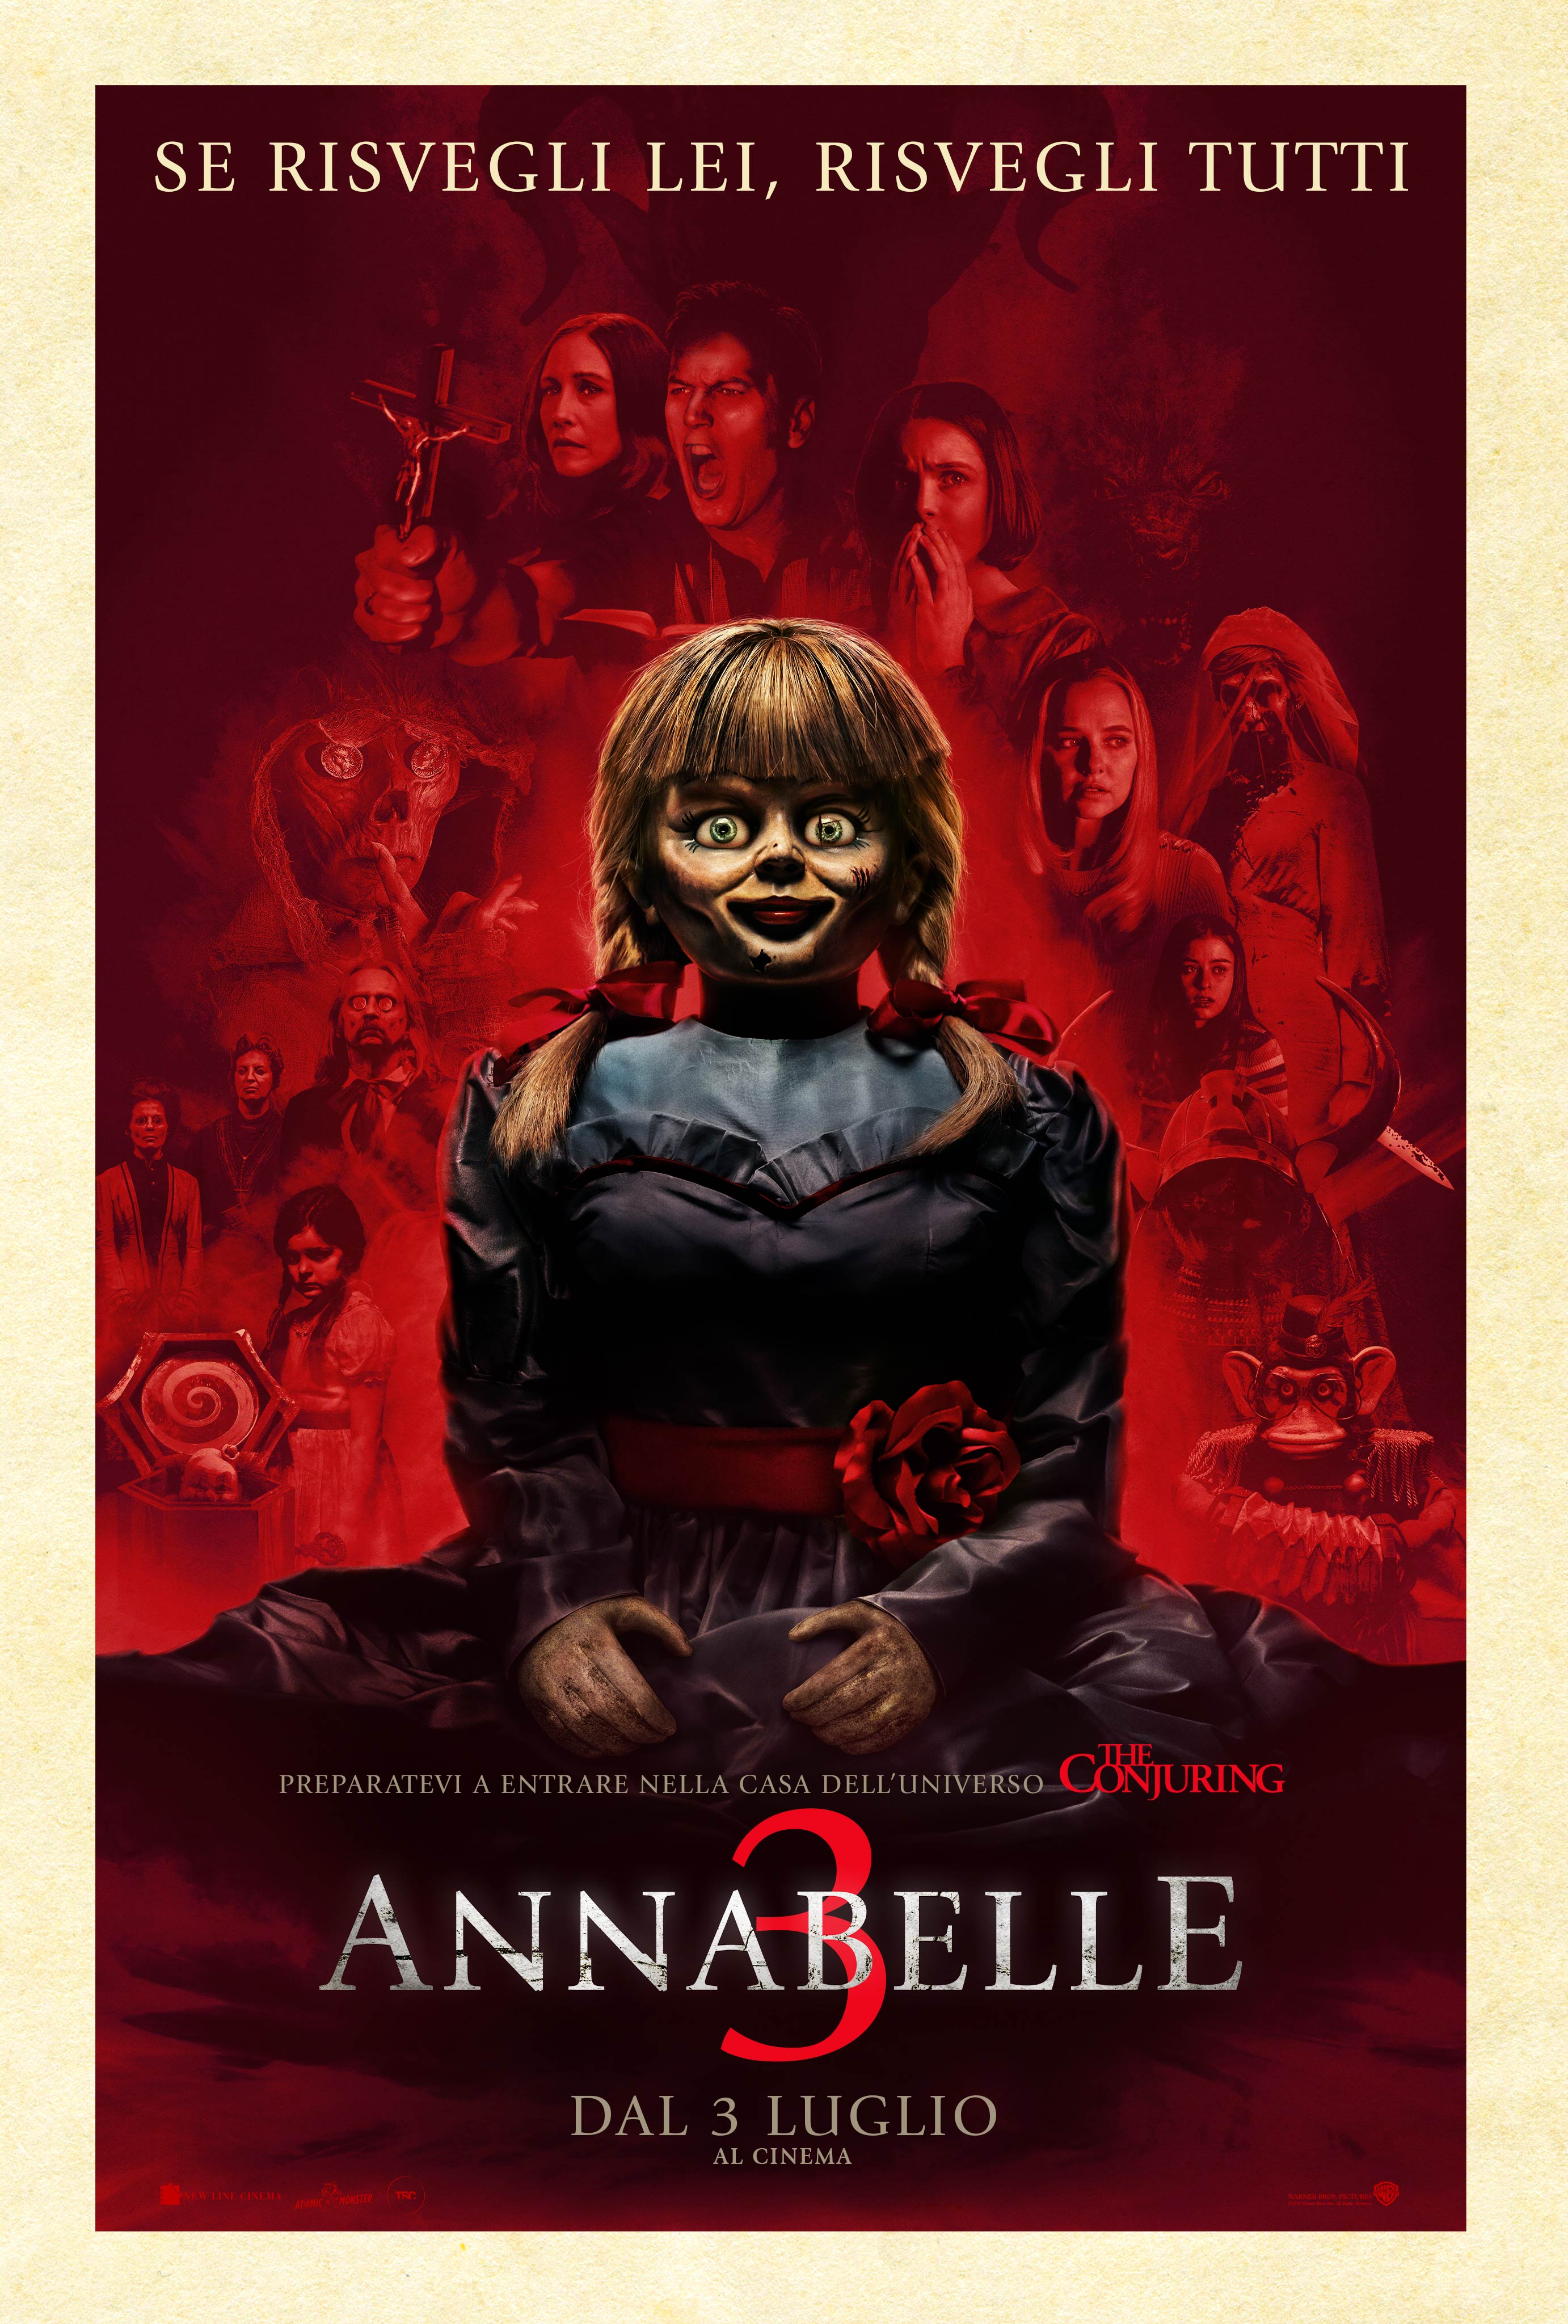 Annabelle 3: Online il nuovo poster